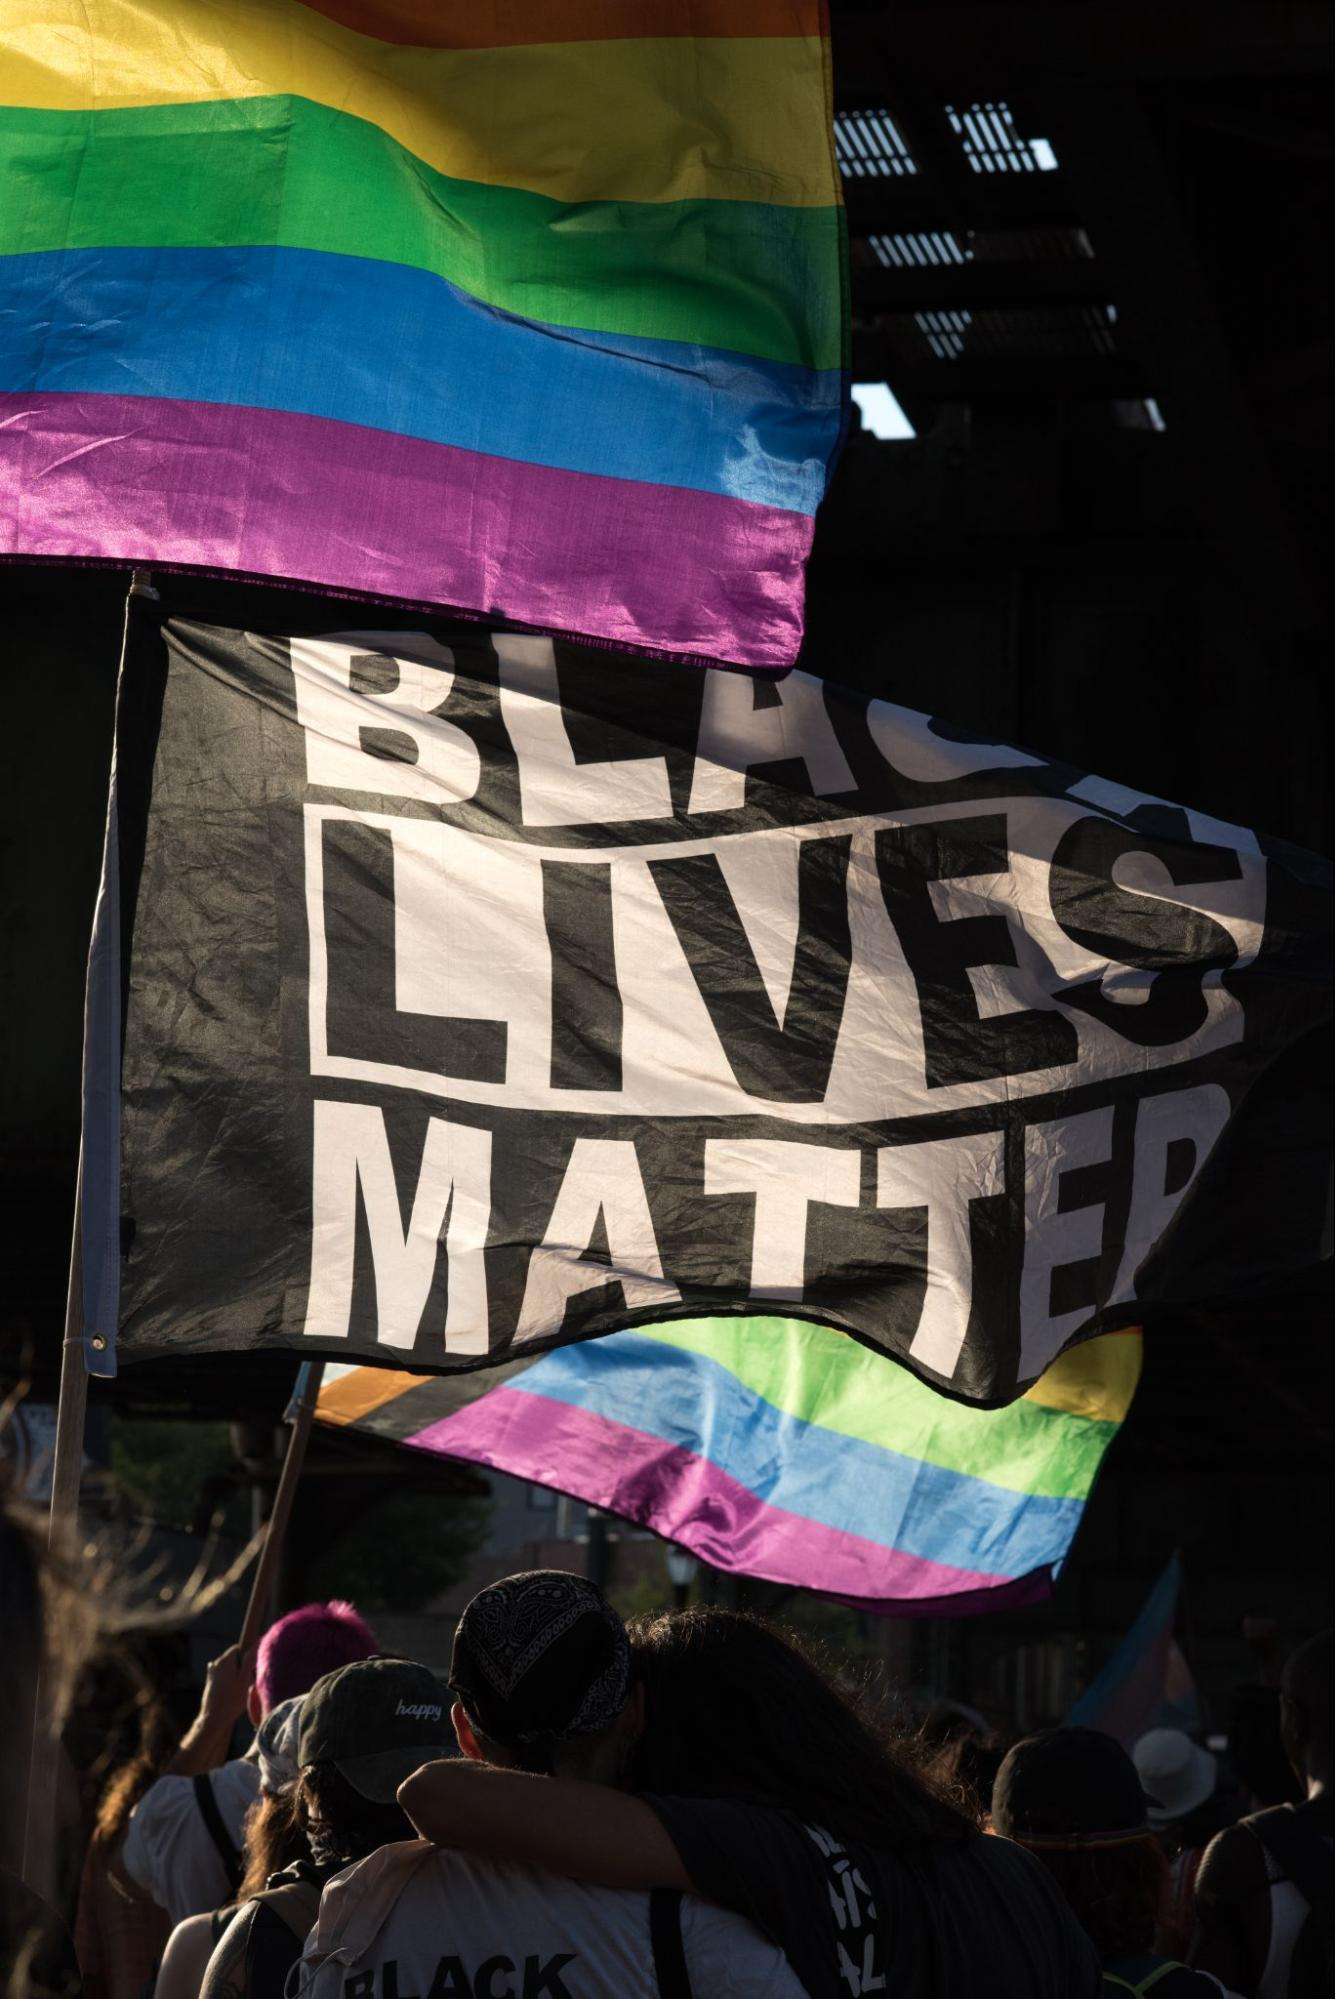 Organizers Hold Wednesday Protest Against Anti-Black and LGBTQ+ Hate in Response to Saturday's 'Anti-Gay' Attack